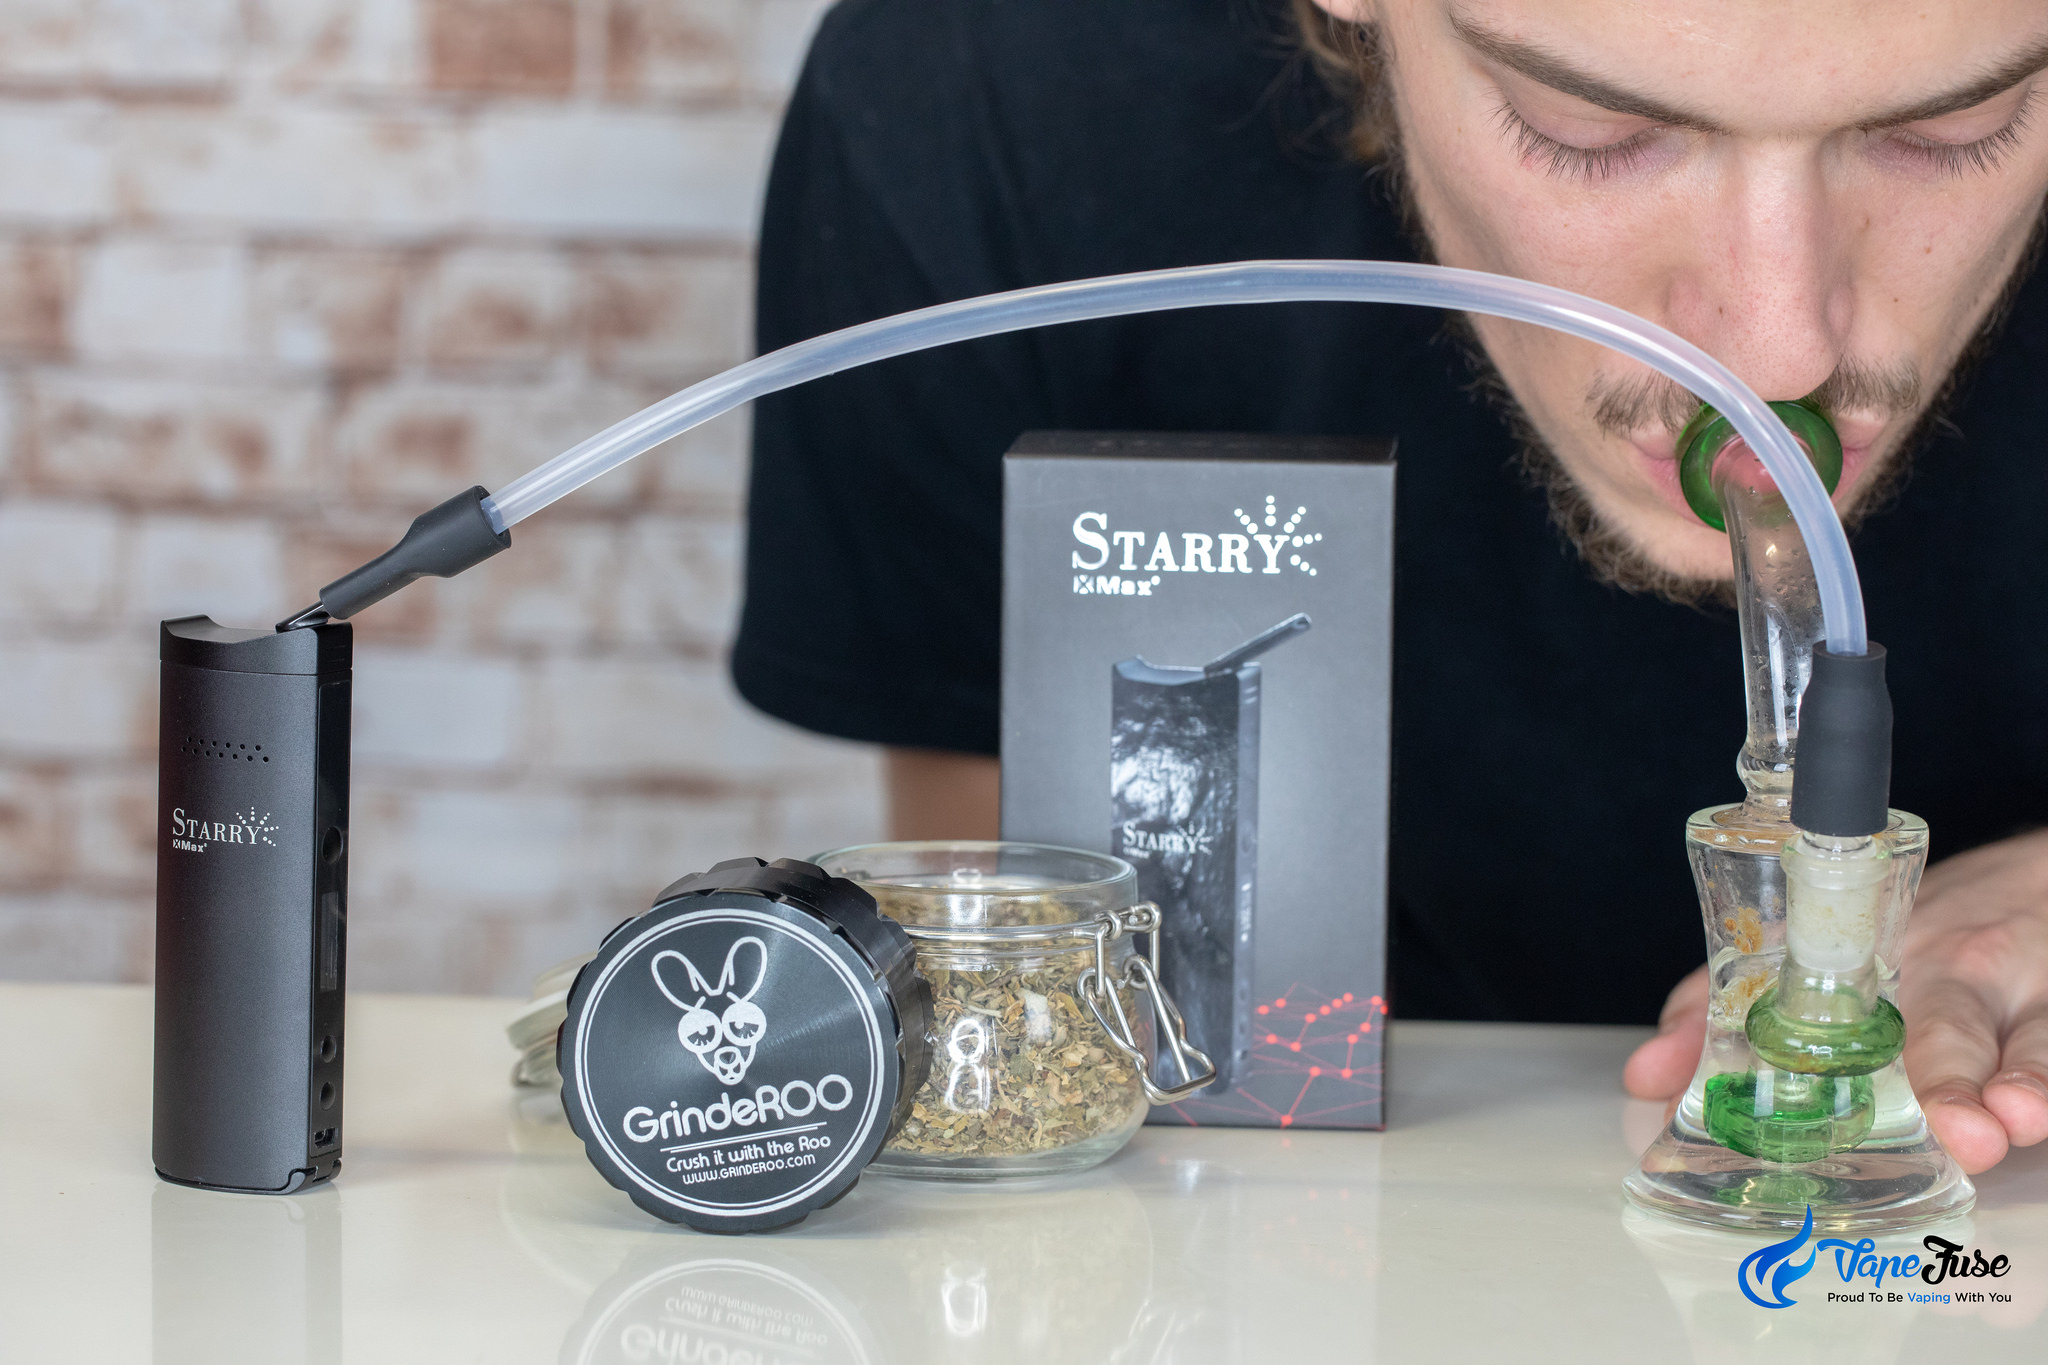 Top 10 Vapes Under $150 X Max Starry